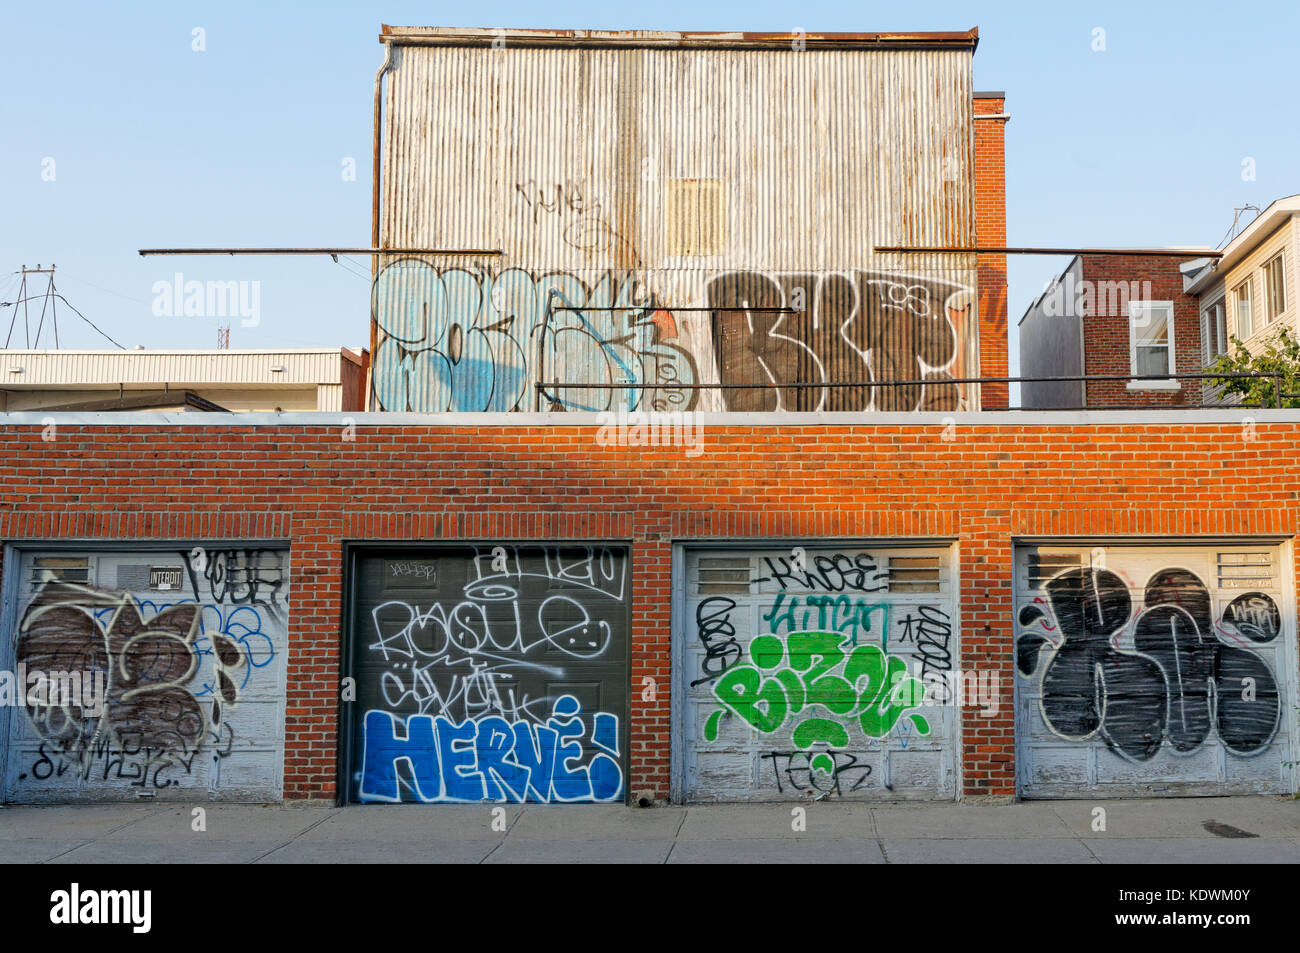 Garage doors and a defaced building covered in urban graffiti and tags, Montreal, Quebec, Canada - Stock Image